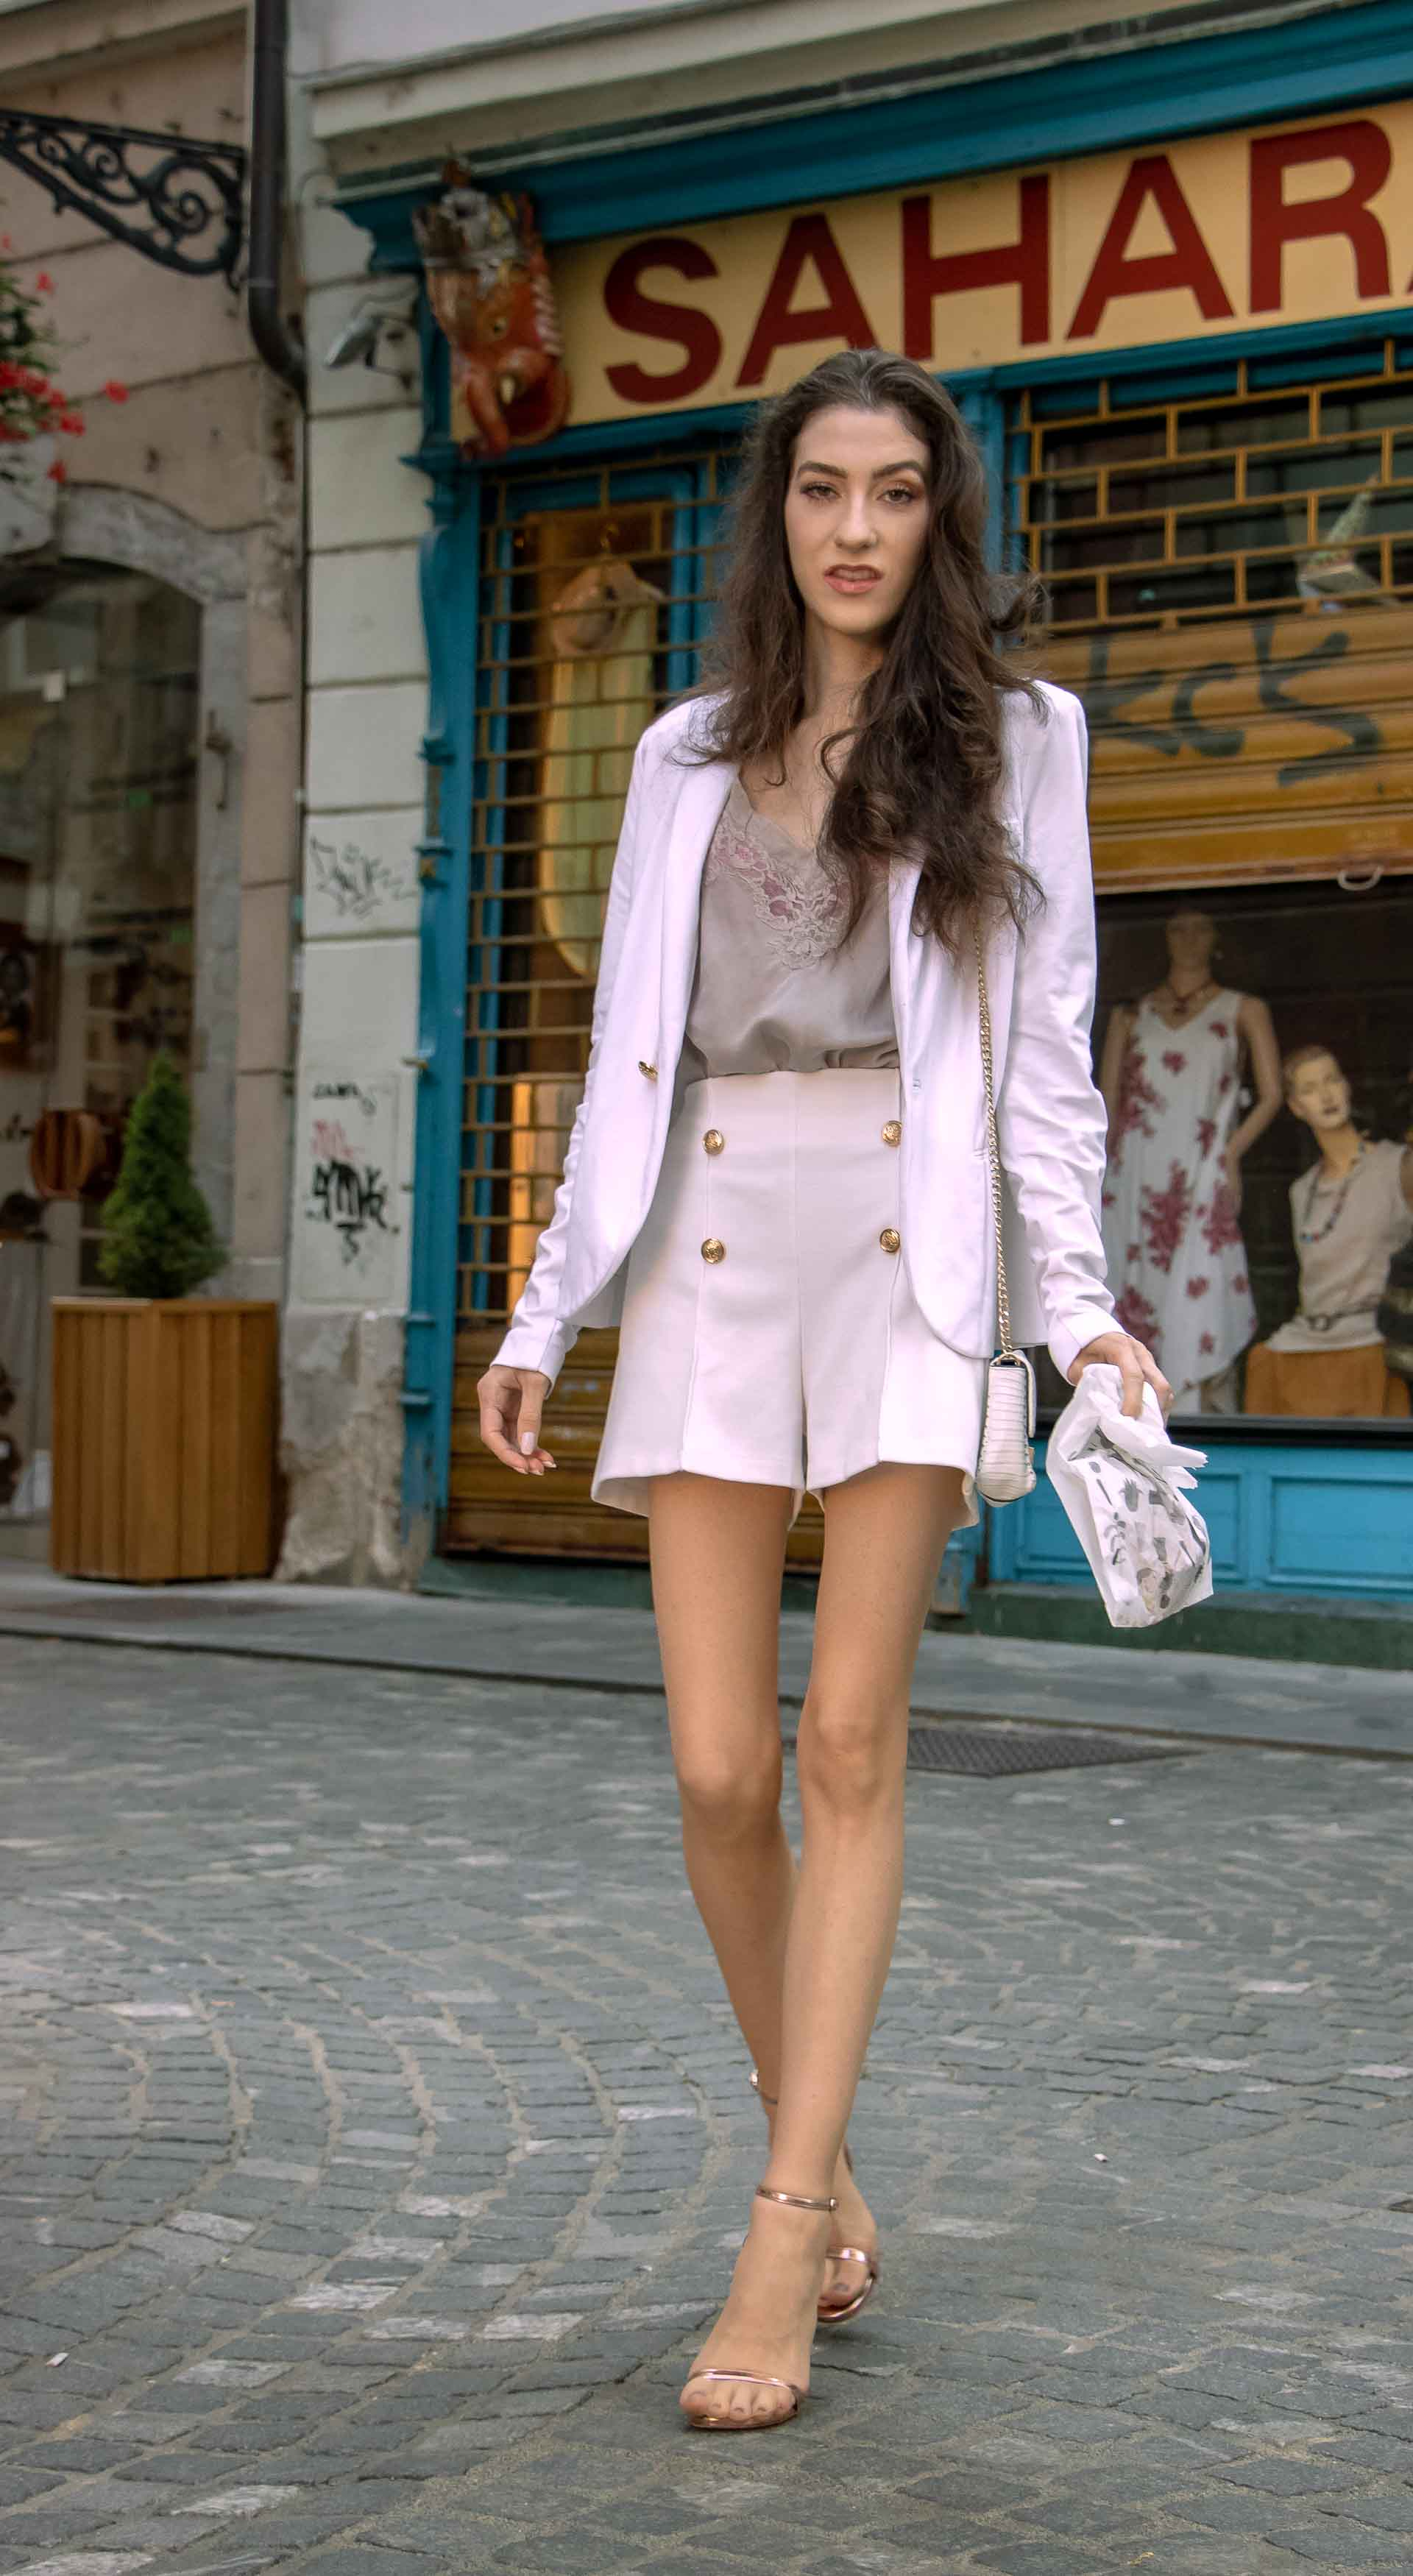 Beautiful Slovenian Fashion Blogger Veronika Lipar of Brunette from Wall dressed in all in white suit, white blazer, white tailored shorts, Stuart Weitzman high shine metallic nudist song sandals, shoulder bag with a paper bag on the street in the morning after party